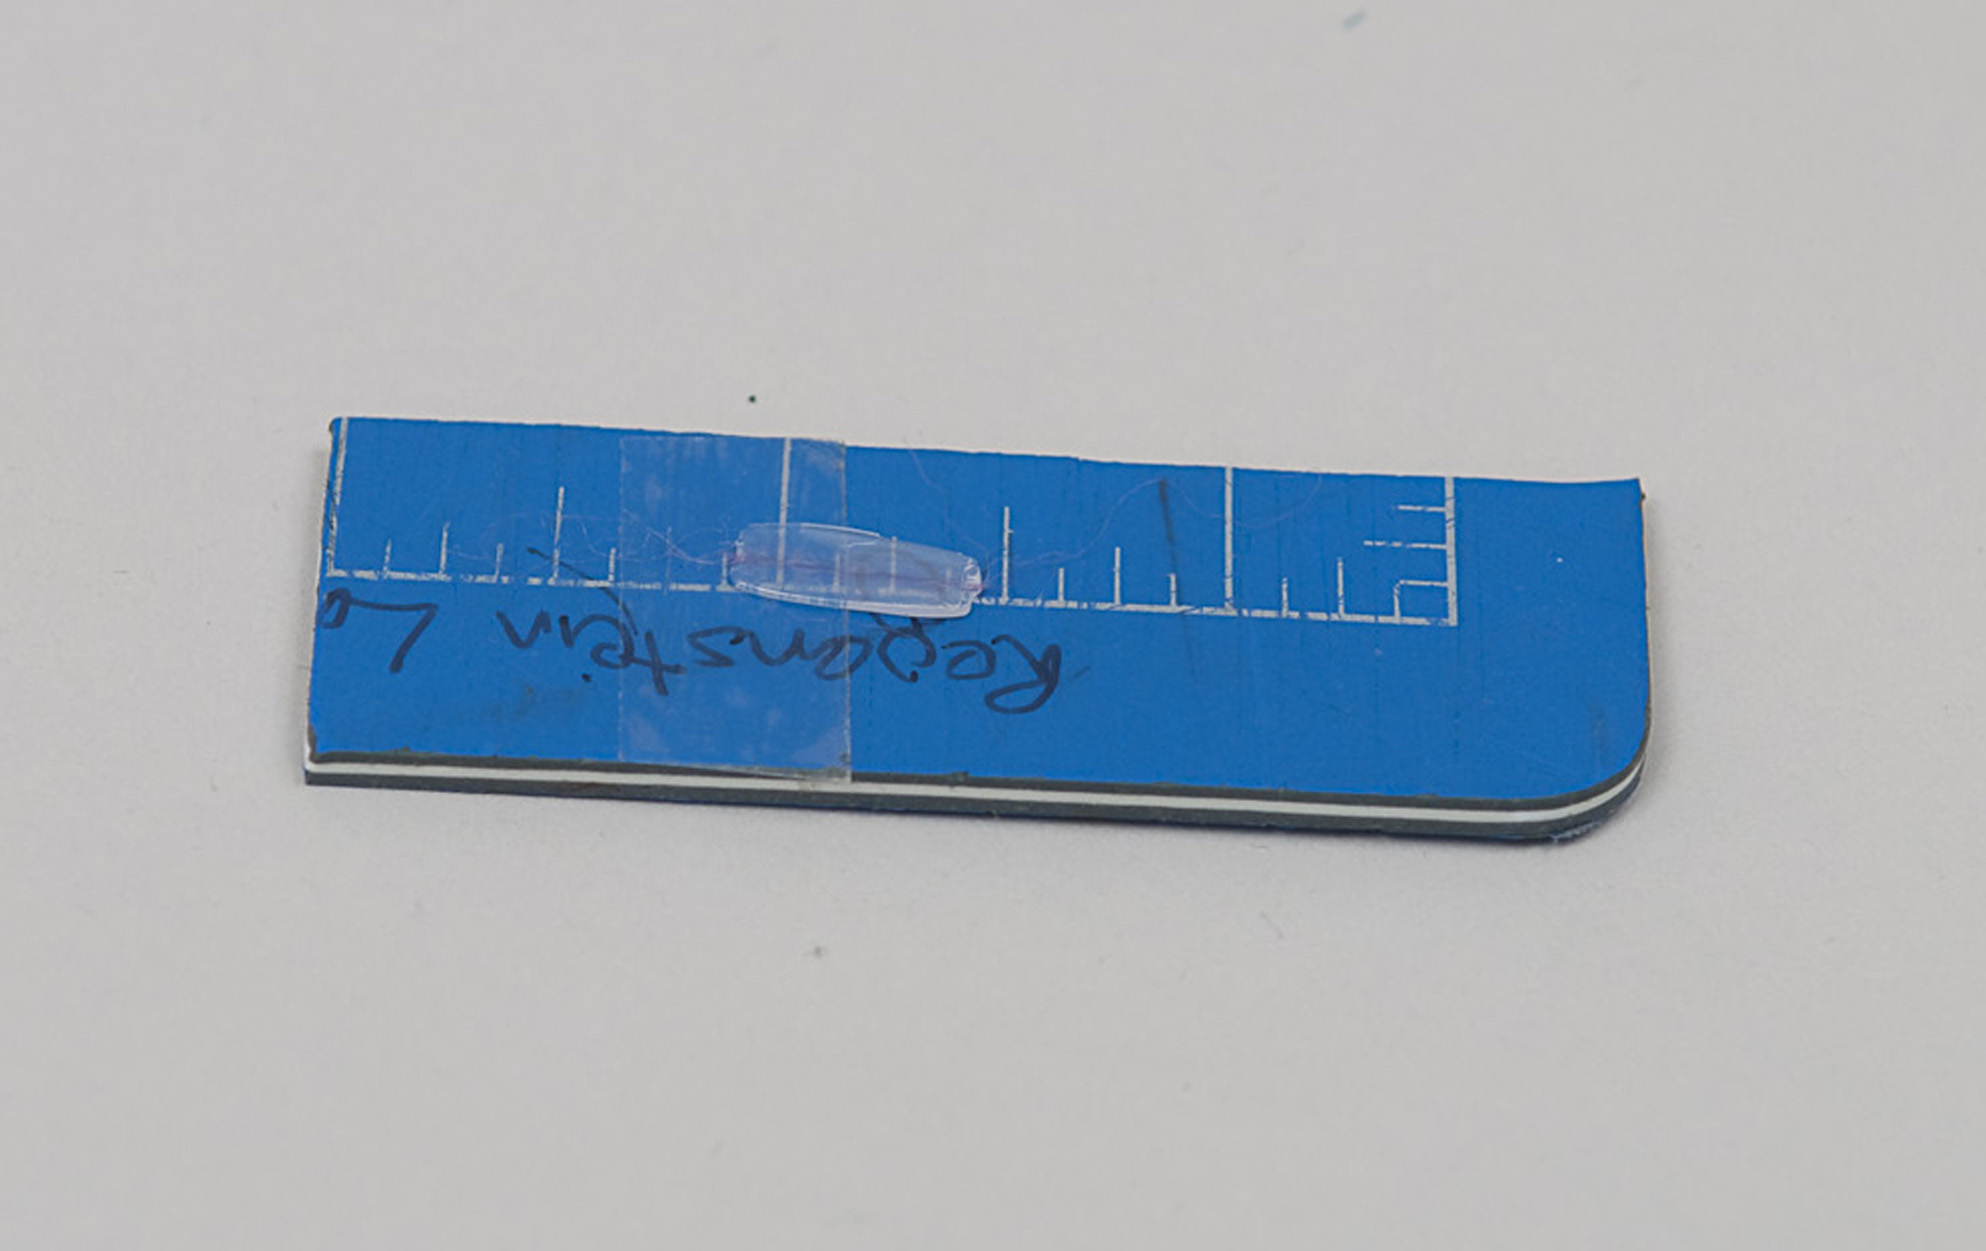 Polythene with embedded fiber, mounted on double-sided tape on a piece of self-healing cutting mat.